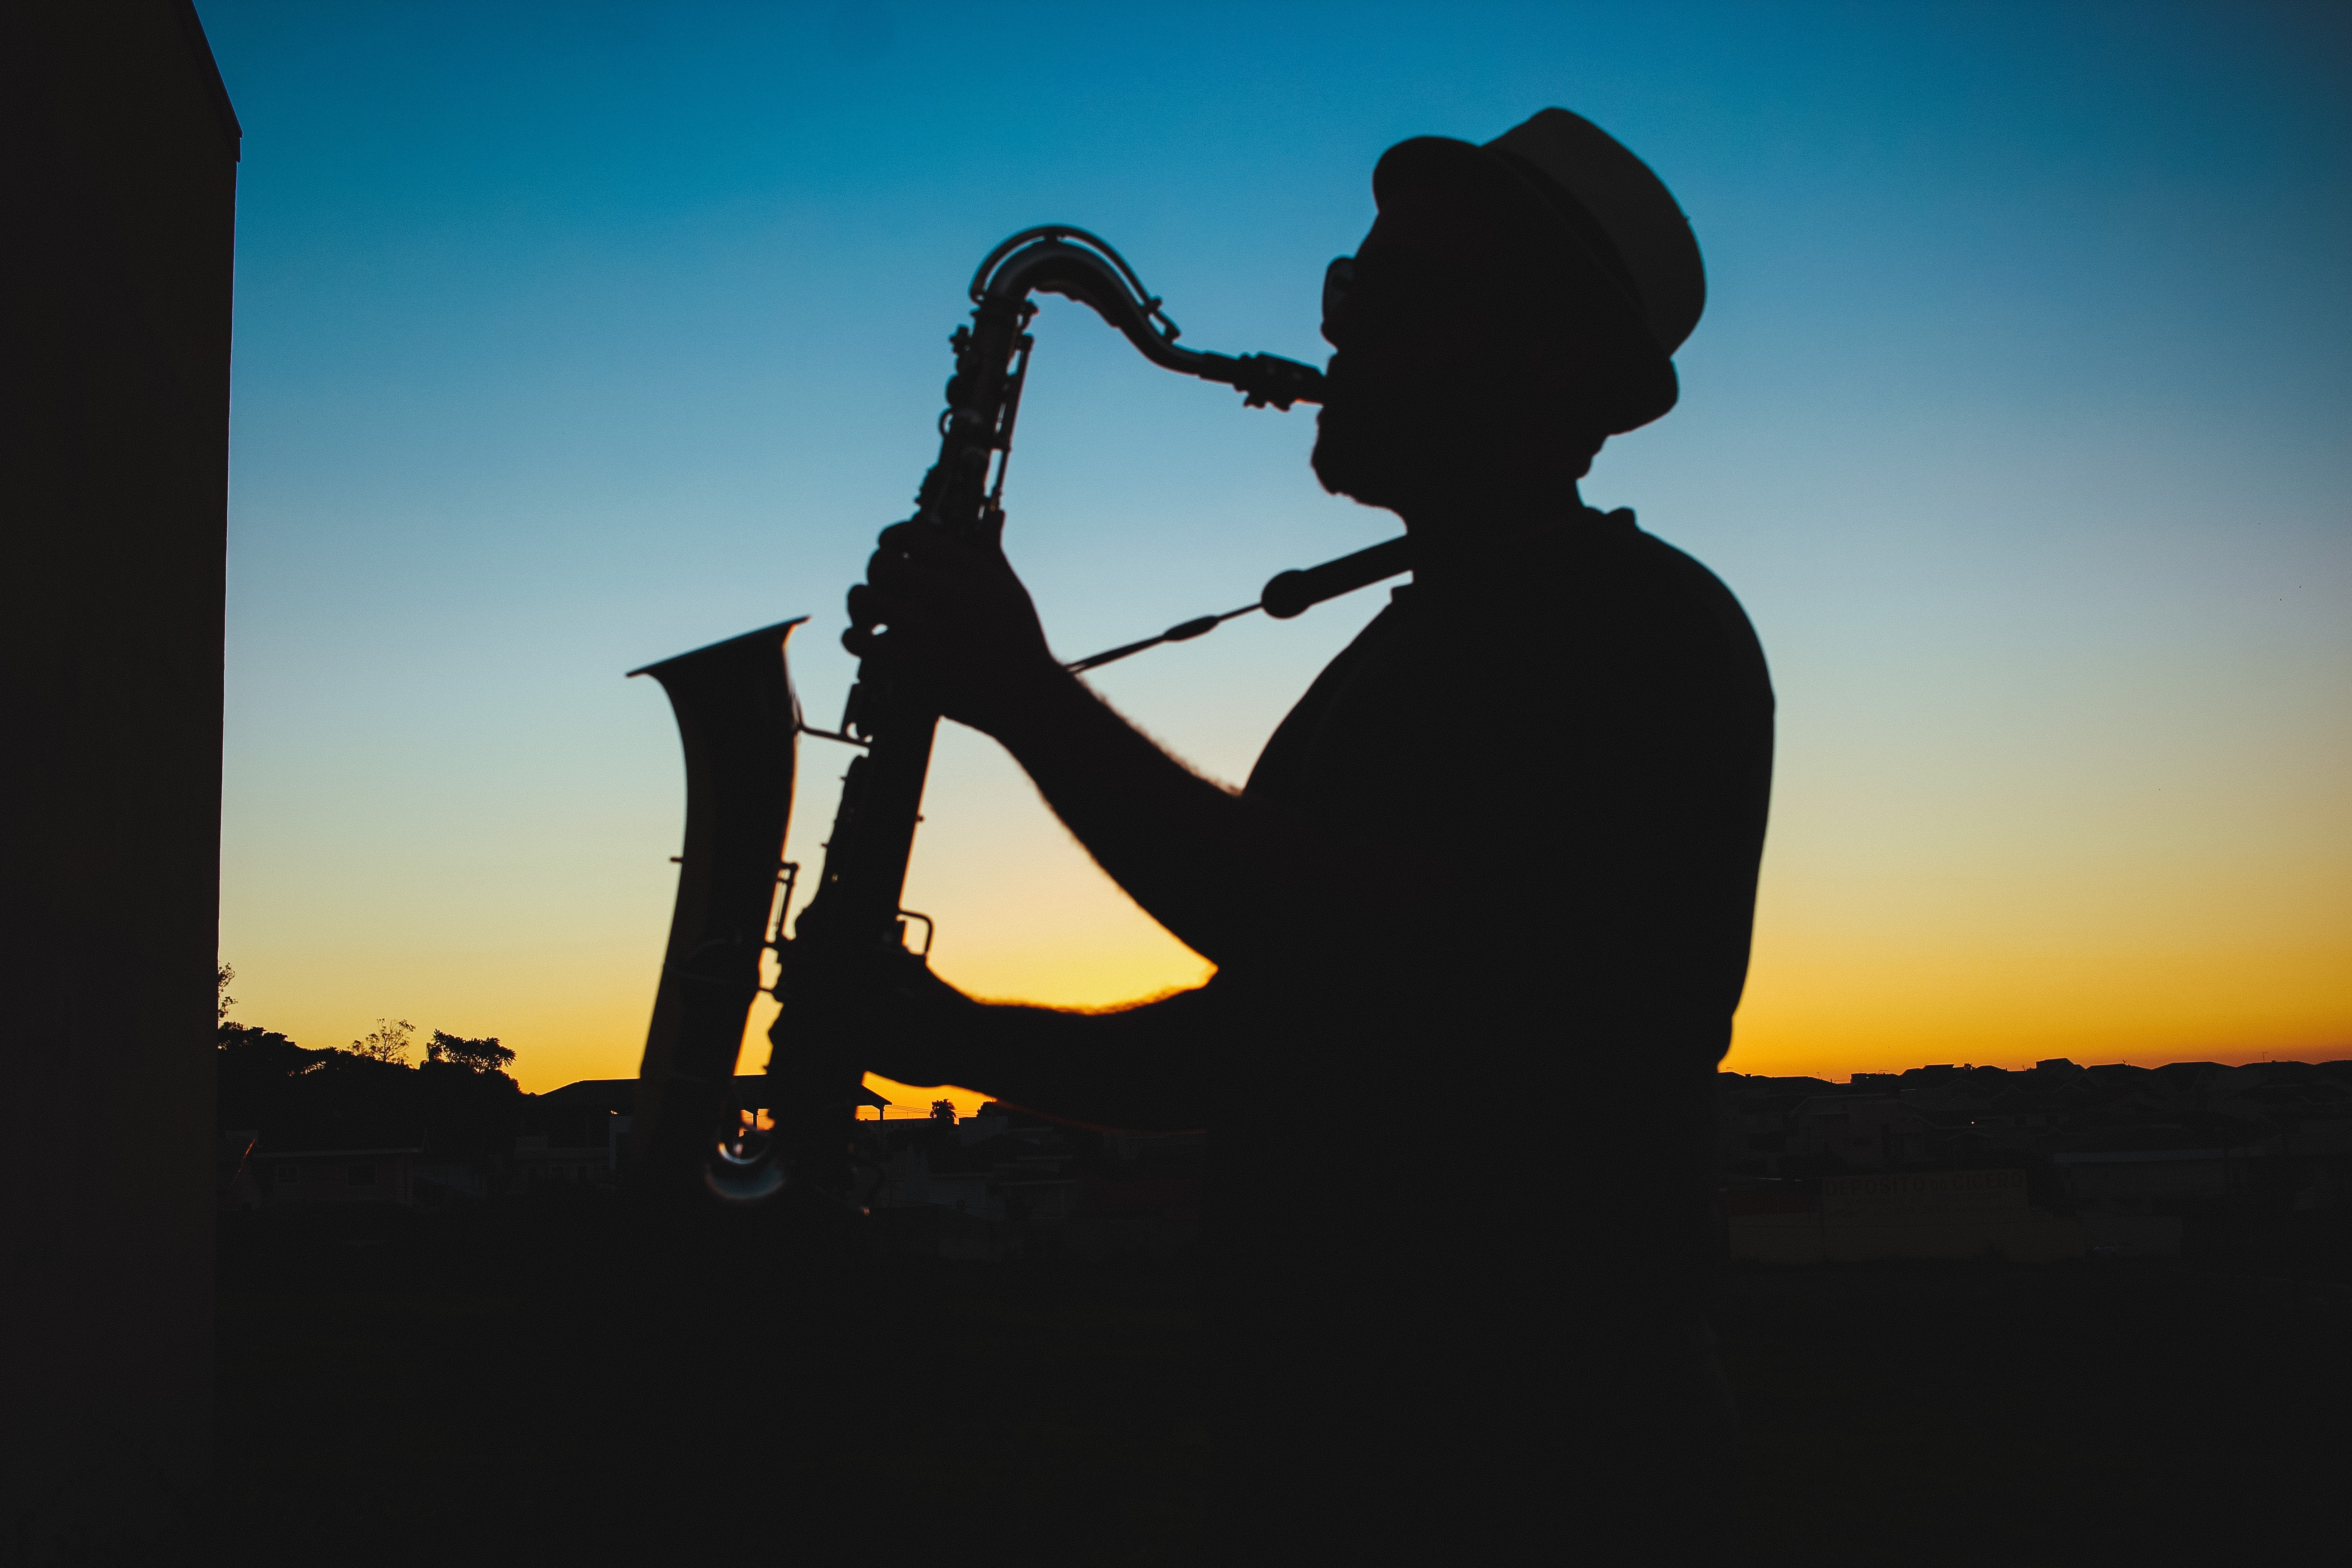 Photograph of a saxophone player silhouetted against a blue and orange sky